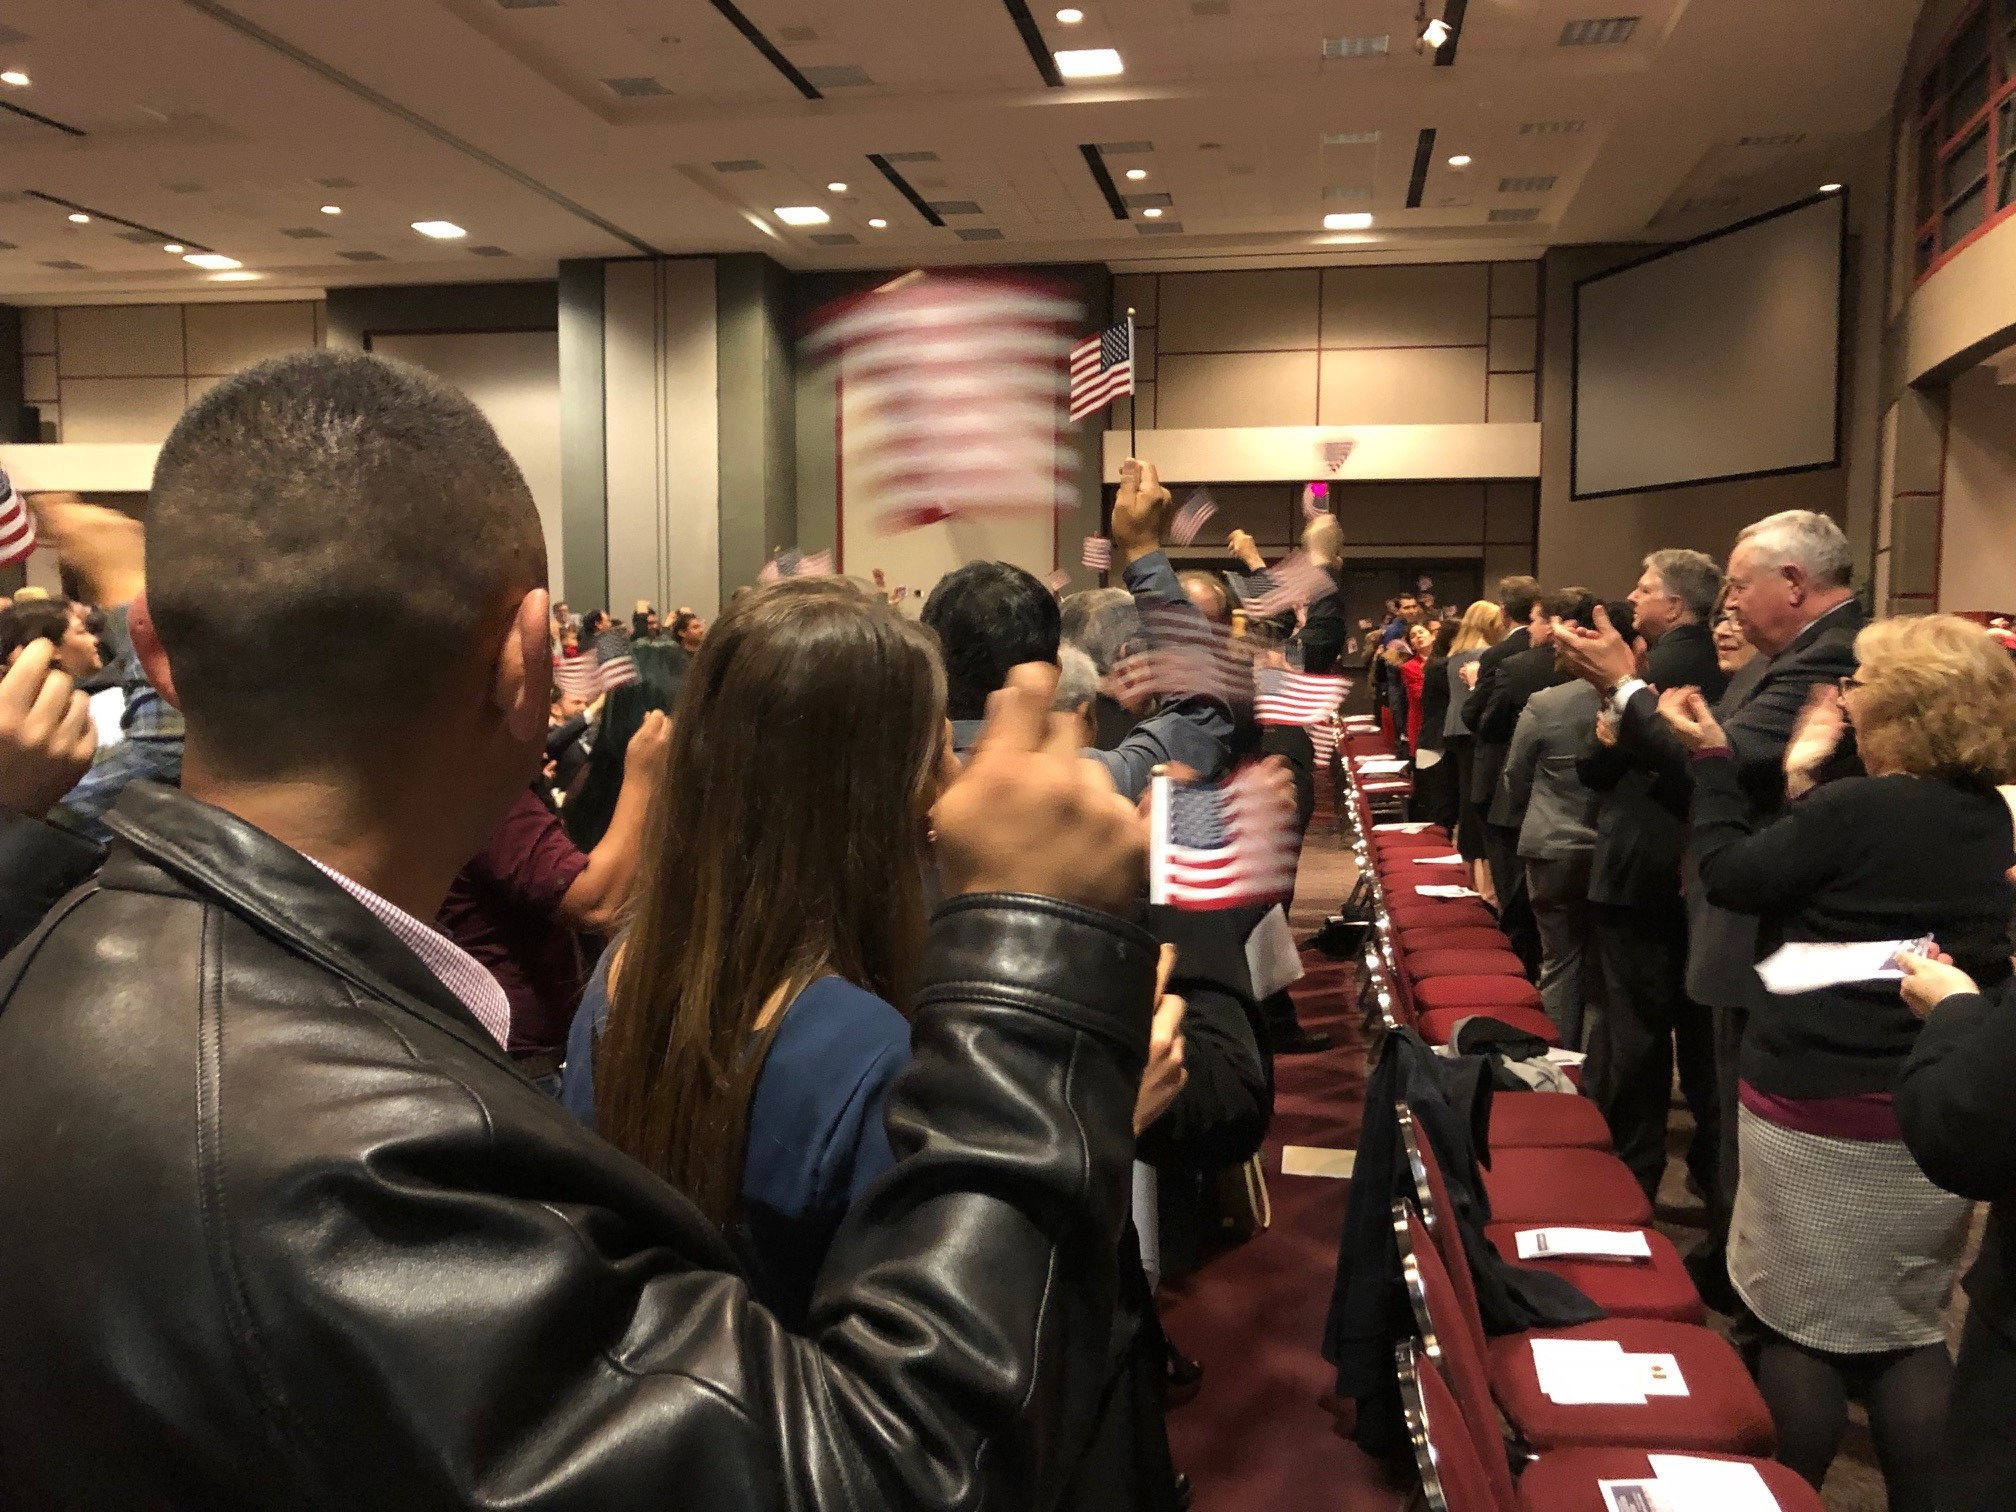 Naturalization Ceremony at Texas State University on Feb. 14, 2018. (KXAN Photo)